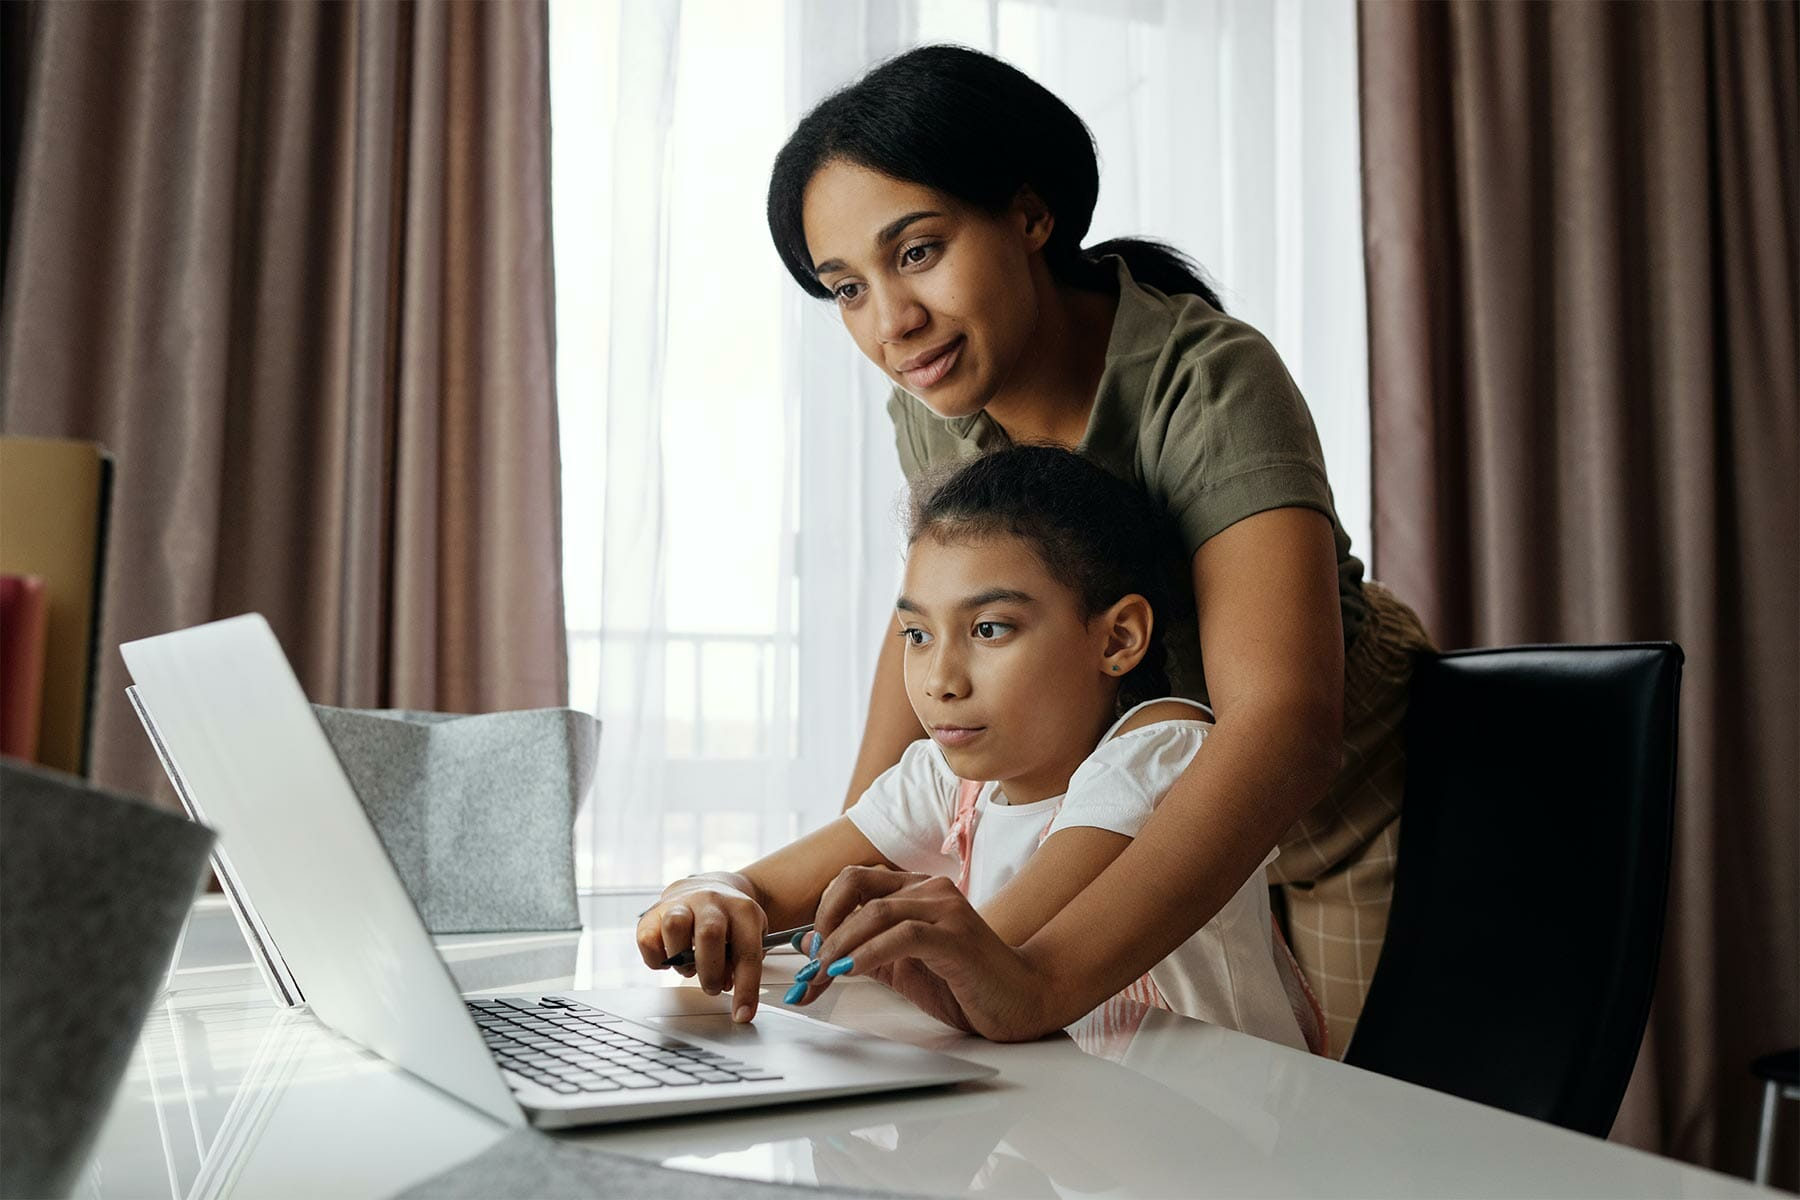 Mom and daughter working on the laptop